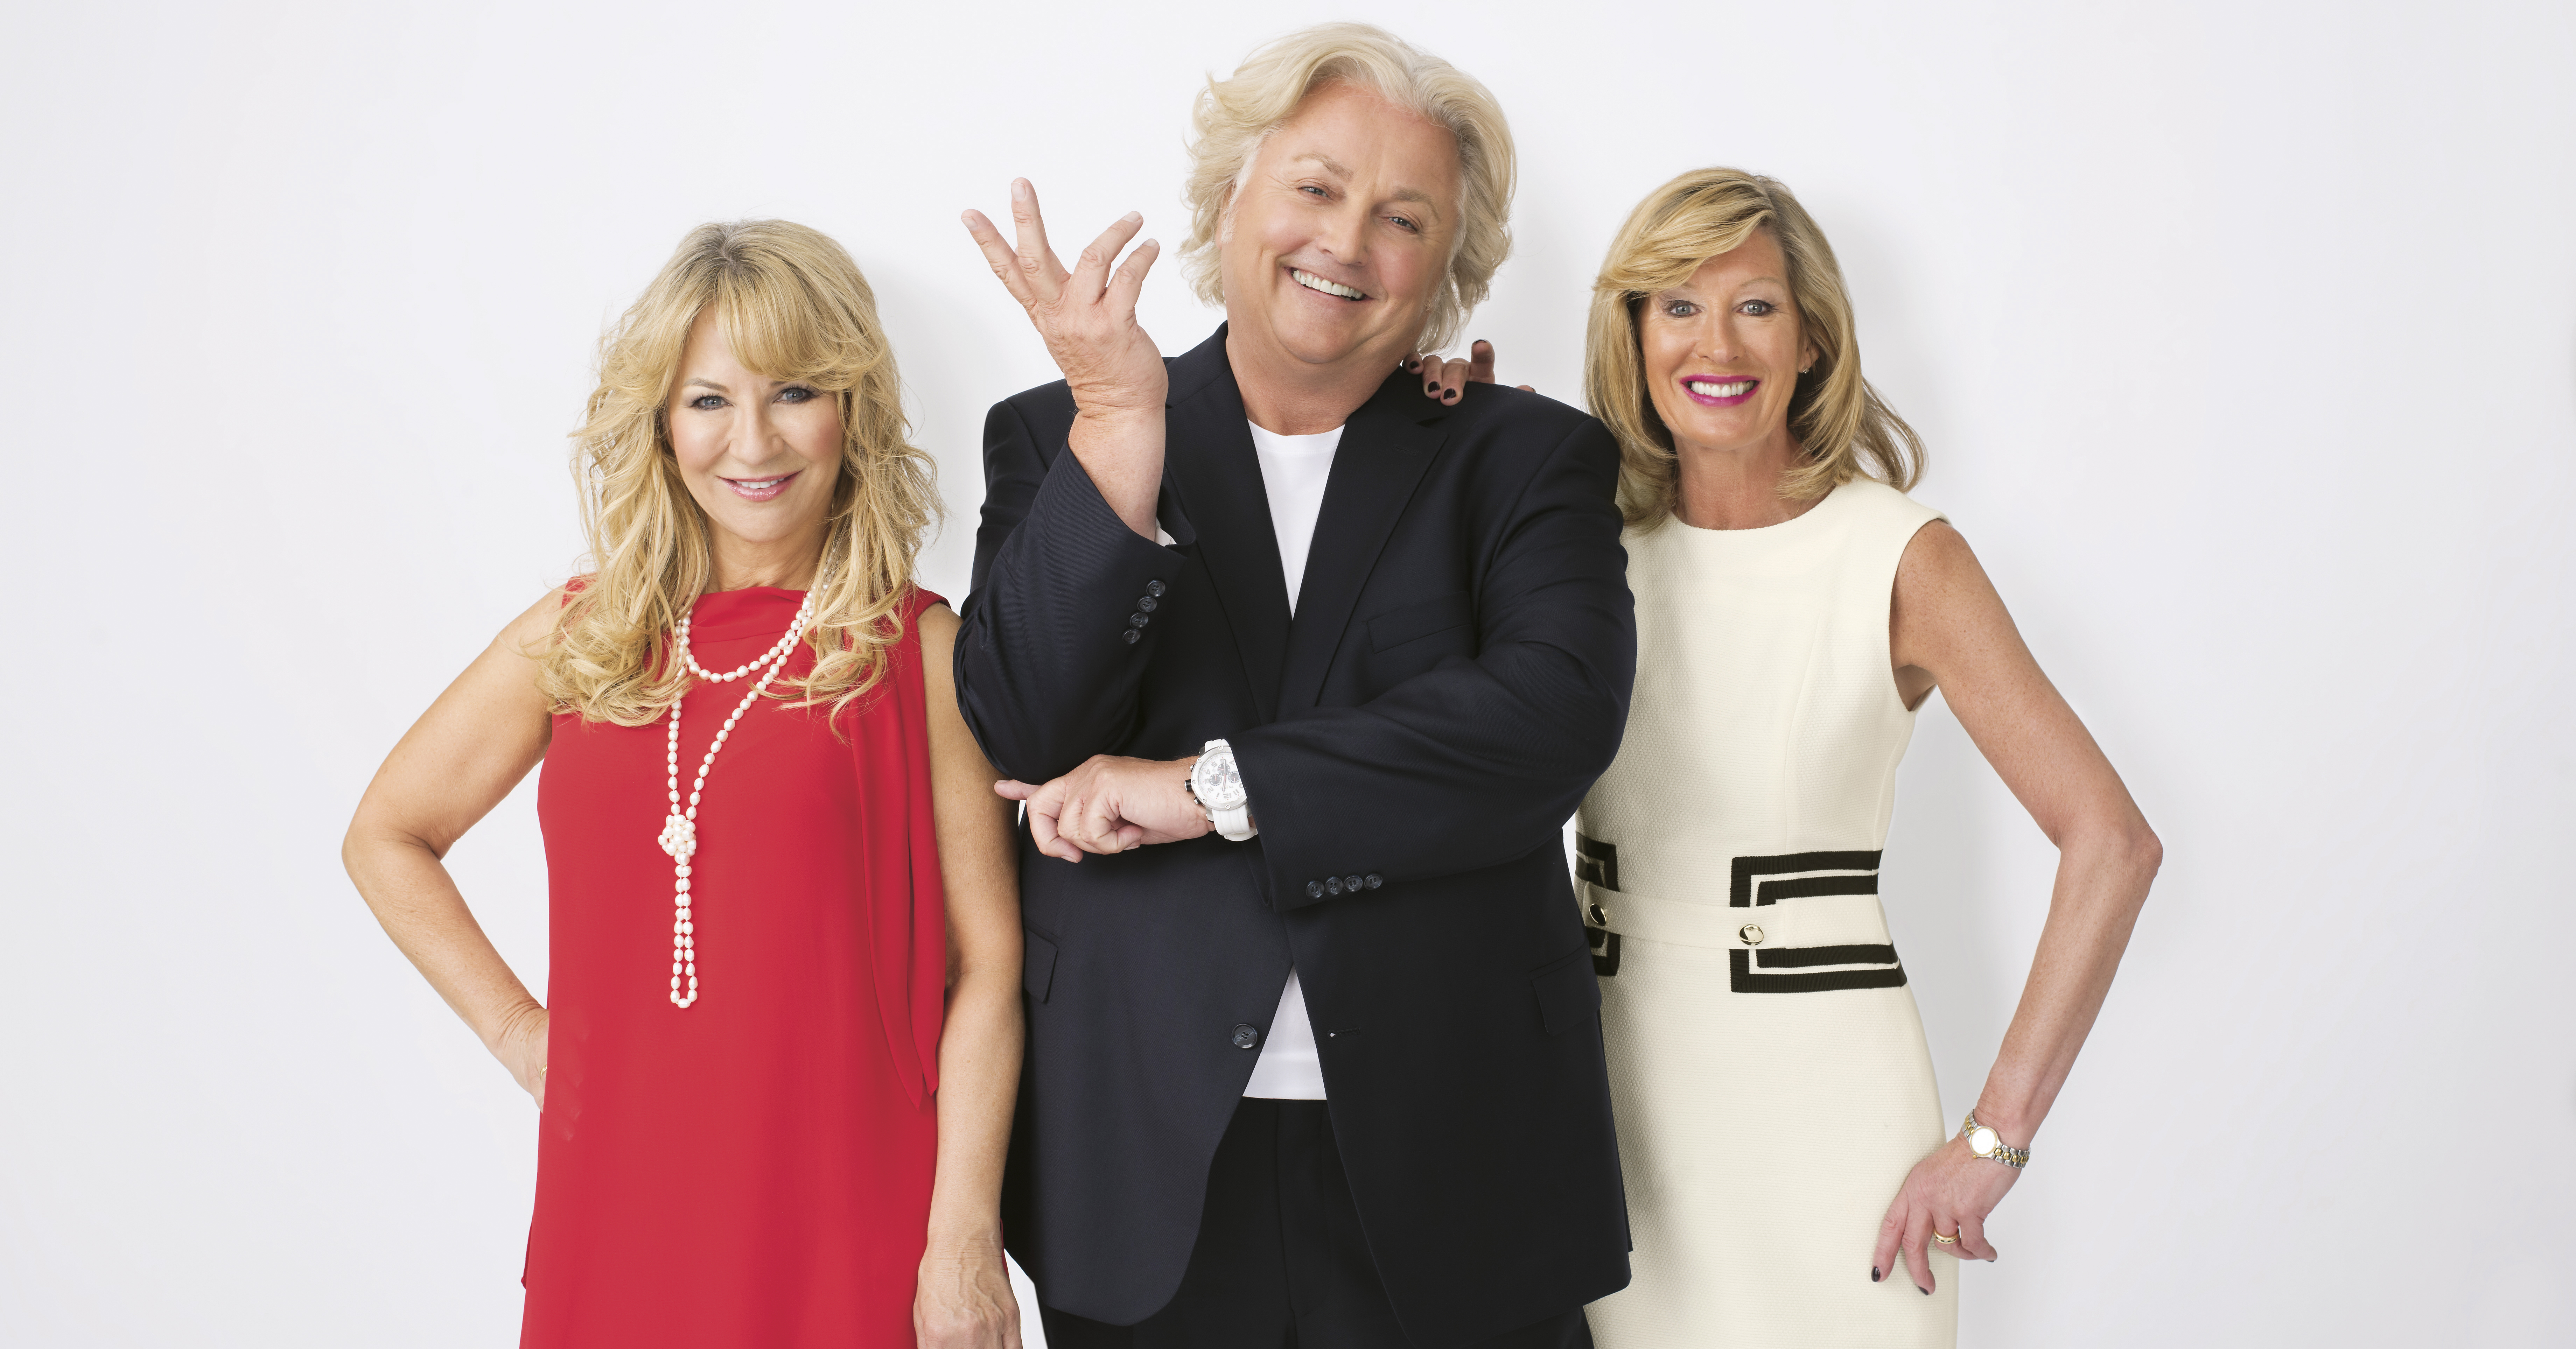 Princess Di's dress designer David Emanuel sets out to find the ideal dress for brides-to-be in the UK version of this US show.